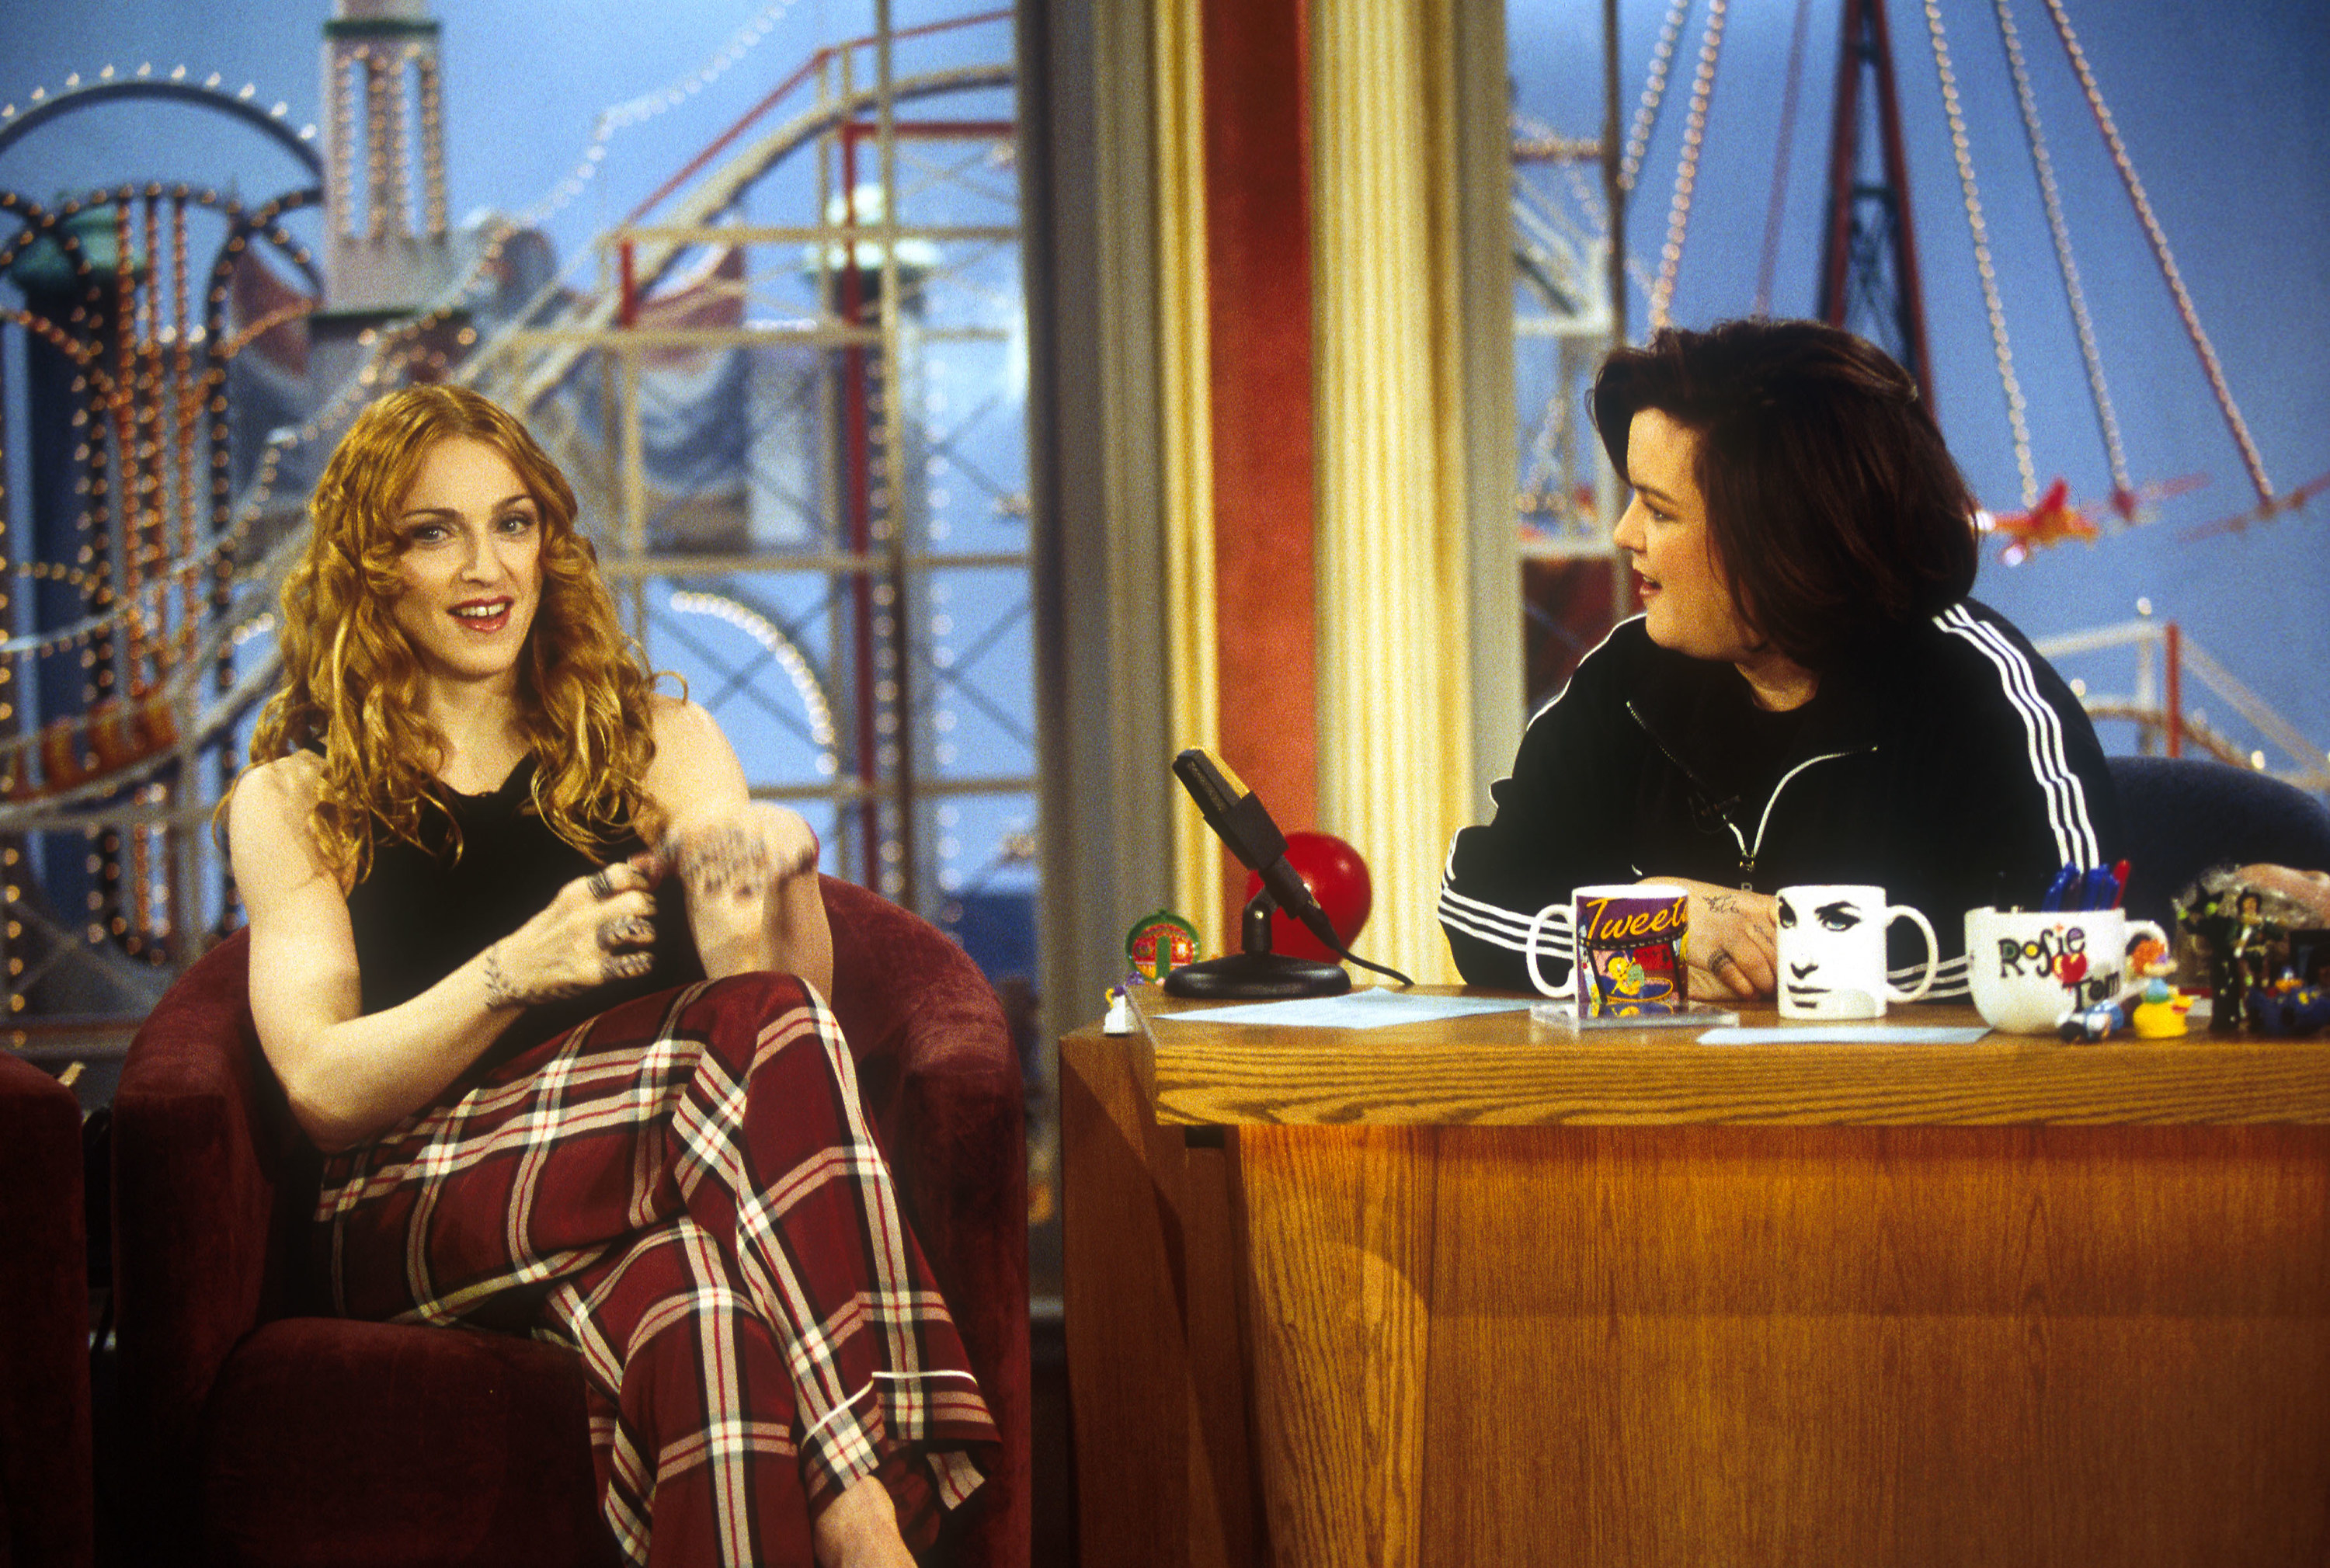 Rosie O'Donnell interviewing Madonna on her show